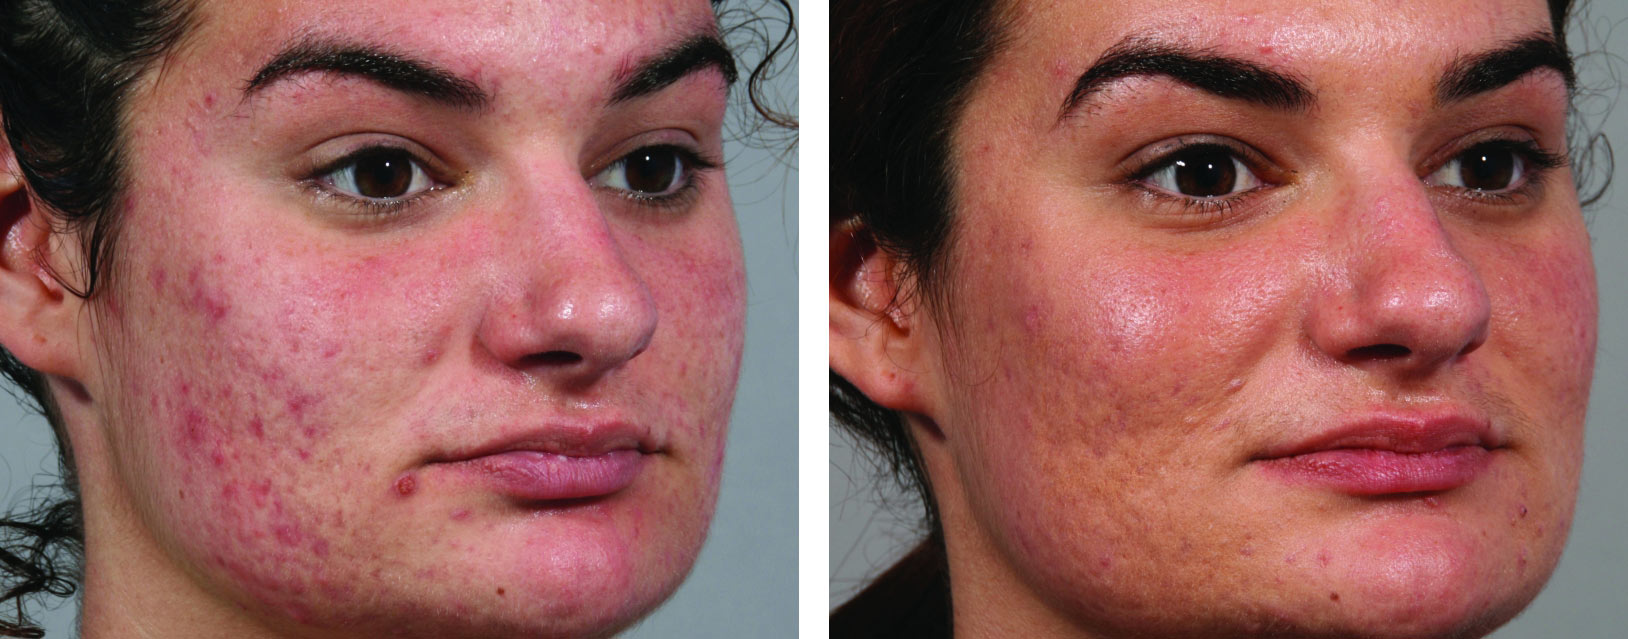 Intensif Microneedling for Acne Scars Before and After 2